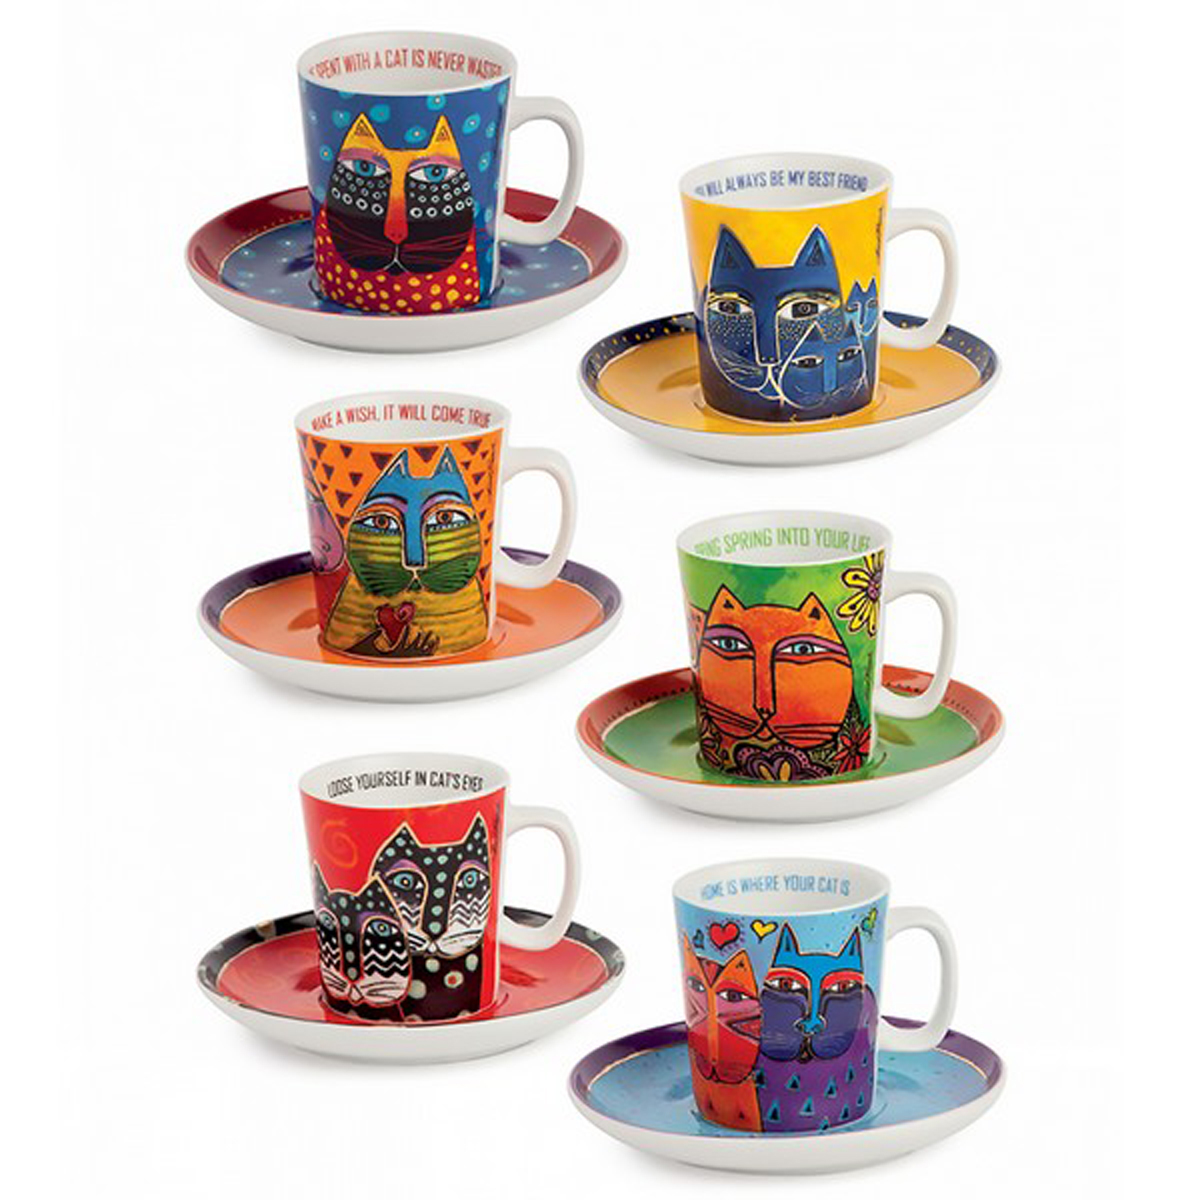 Coffret 6 tasses espressos porcelaine \'Laurel Burch\' multicolore (chats) - tasse 60x65 mm - [A2394]